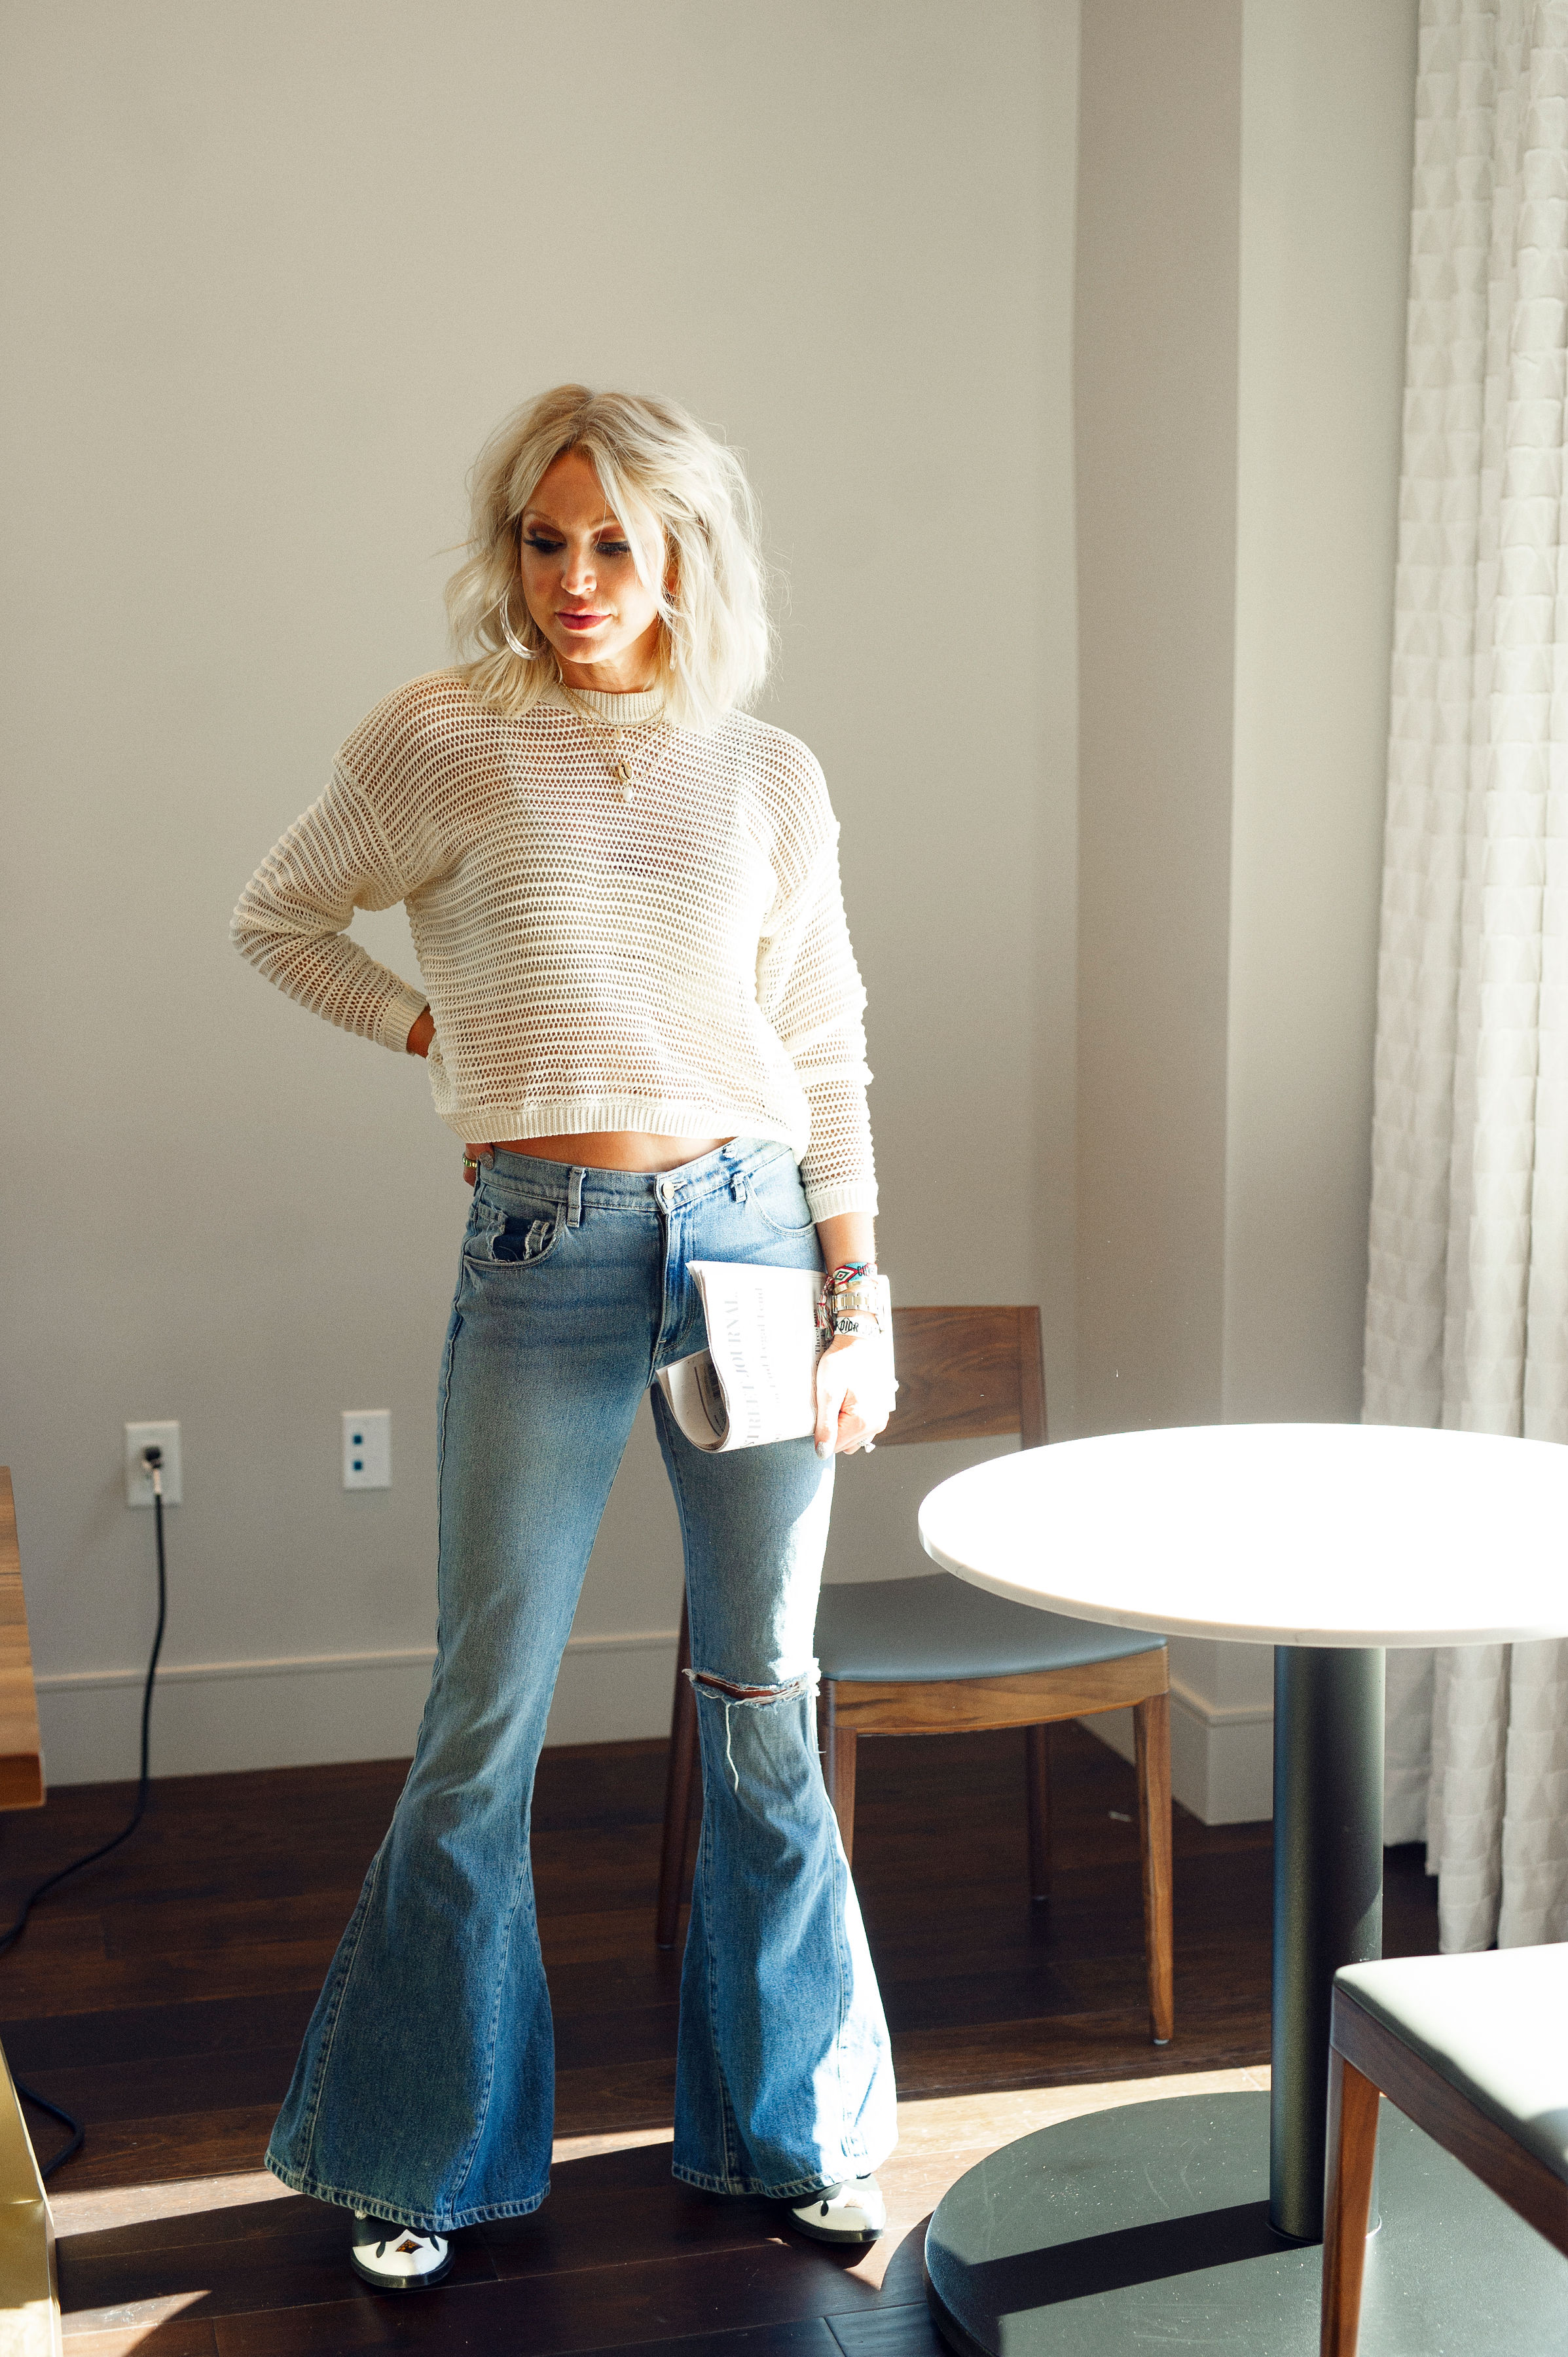 I styled the whole lewk, very easy breezy summer vibe with a pair of bell bottom jeans and cowgirl boots. -